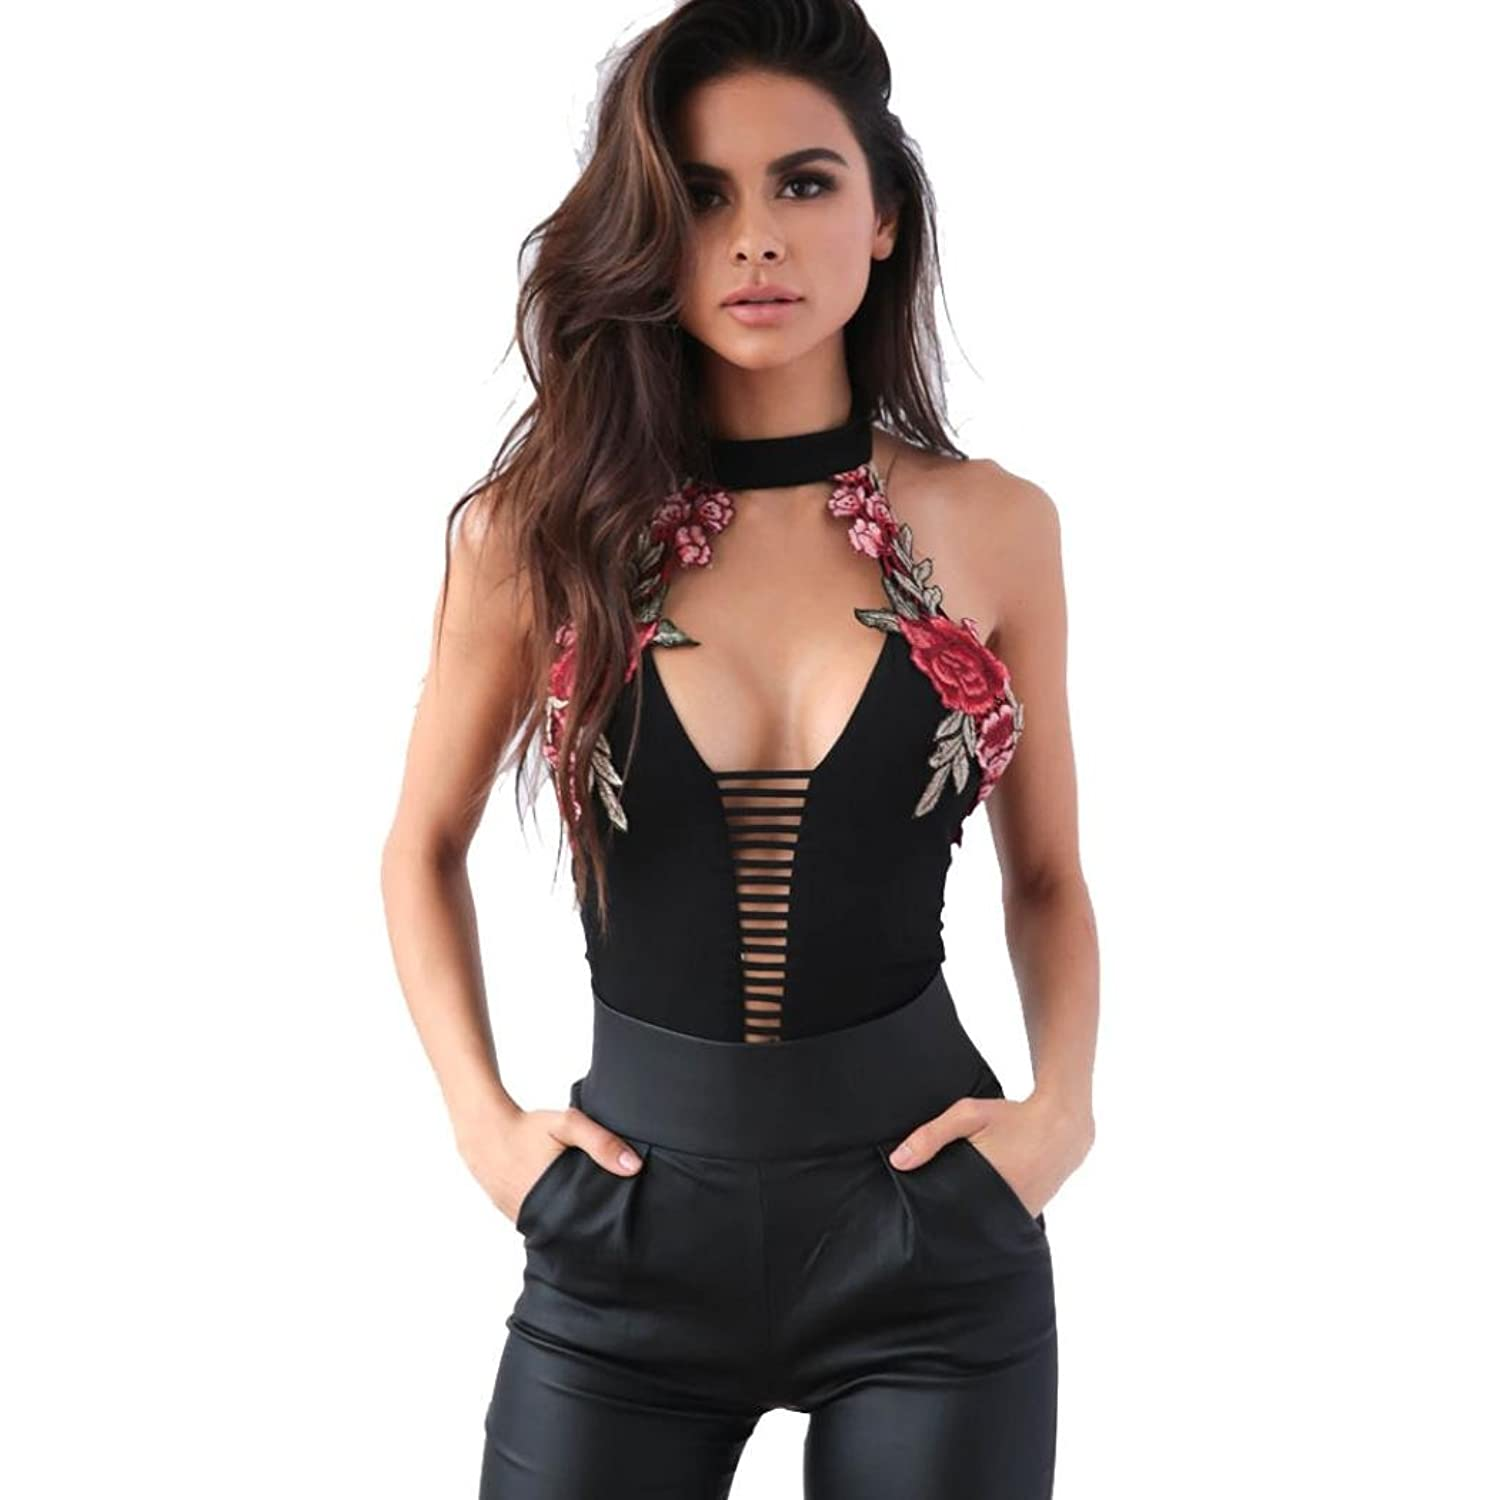 Wensltd Clearance! Women Appliqued Clubwear Halter Playsuit Bodycon Party Jumpsuit